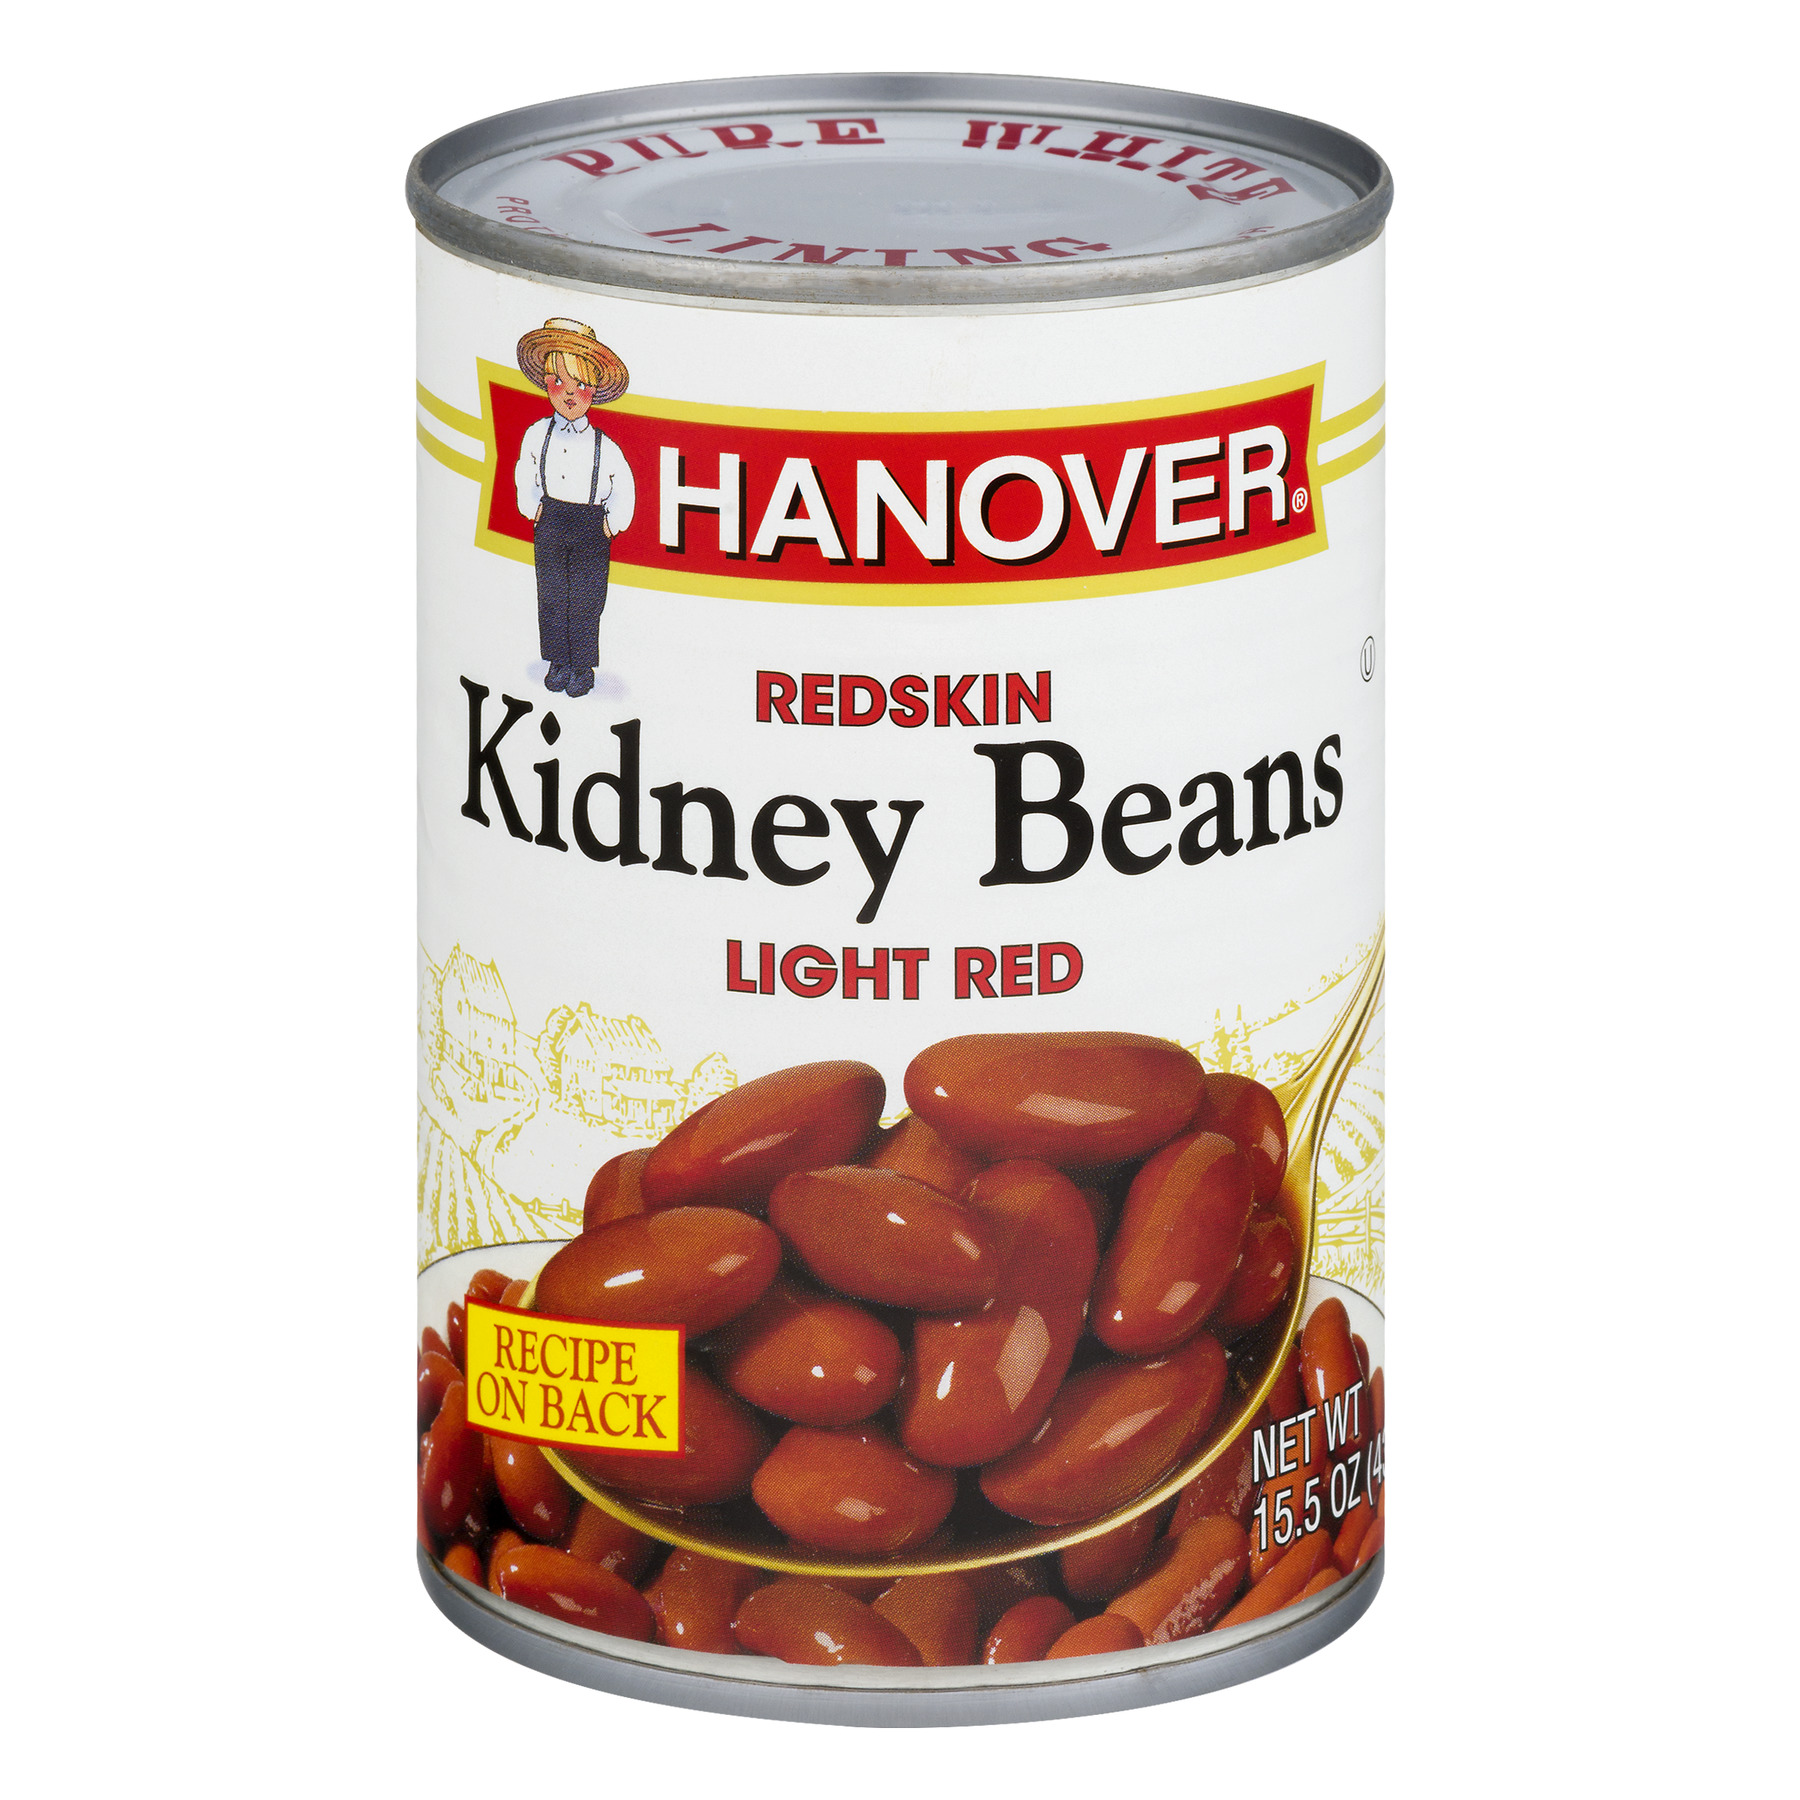 Hanover Redskin Kidney Beans Light Red, 15.5 OZ